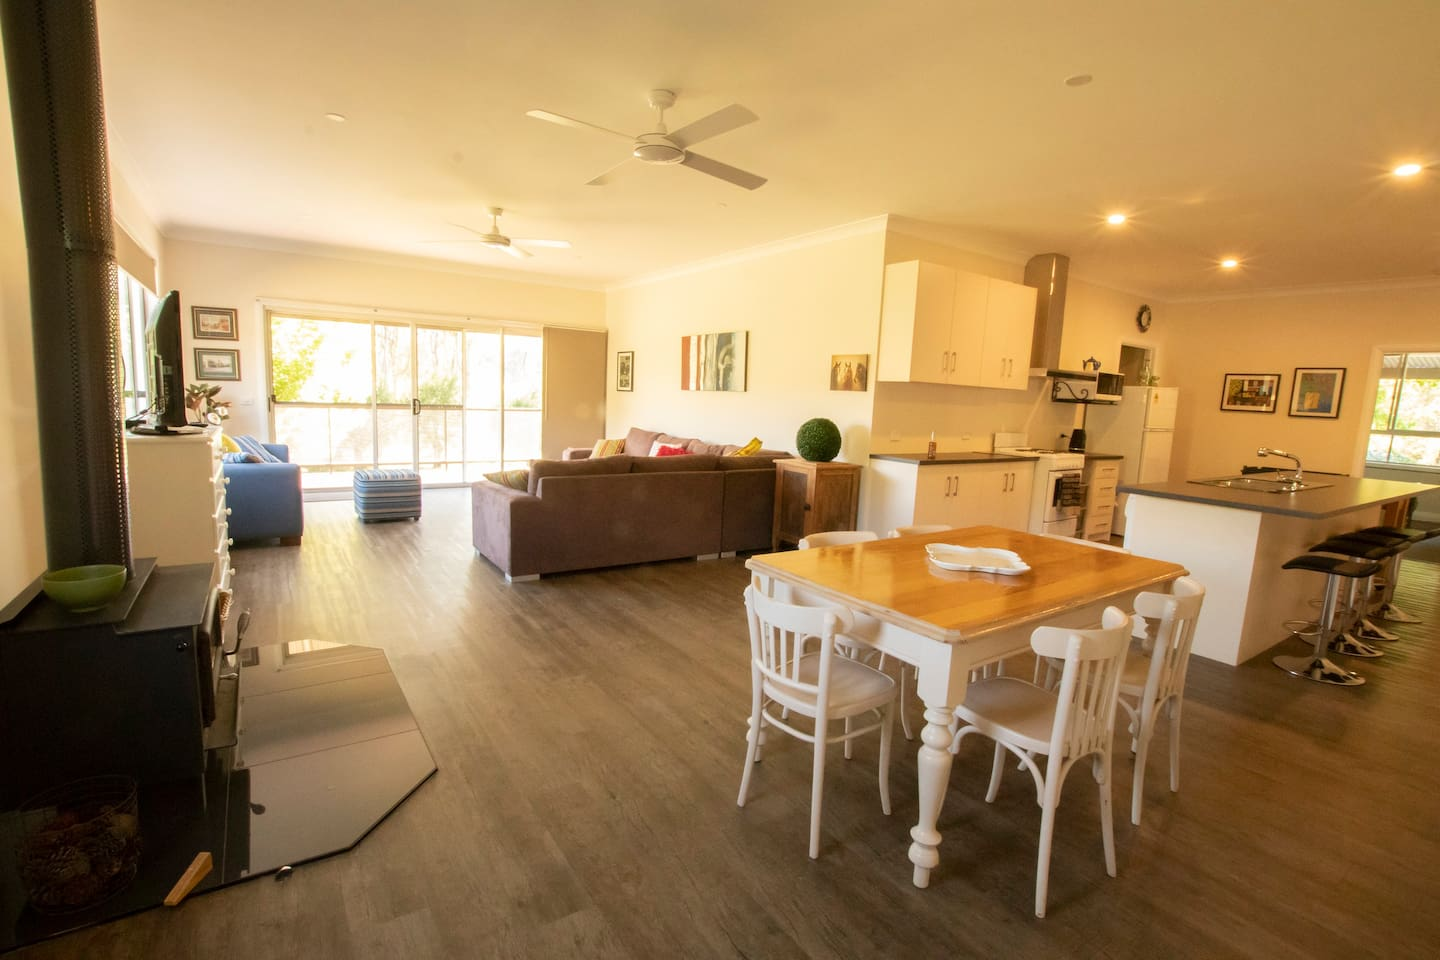 Large open plan kitchen, dining & lounge area opens out onto a large deck and alfresco dining area